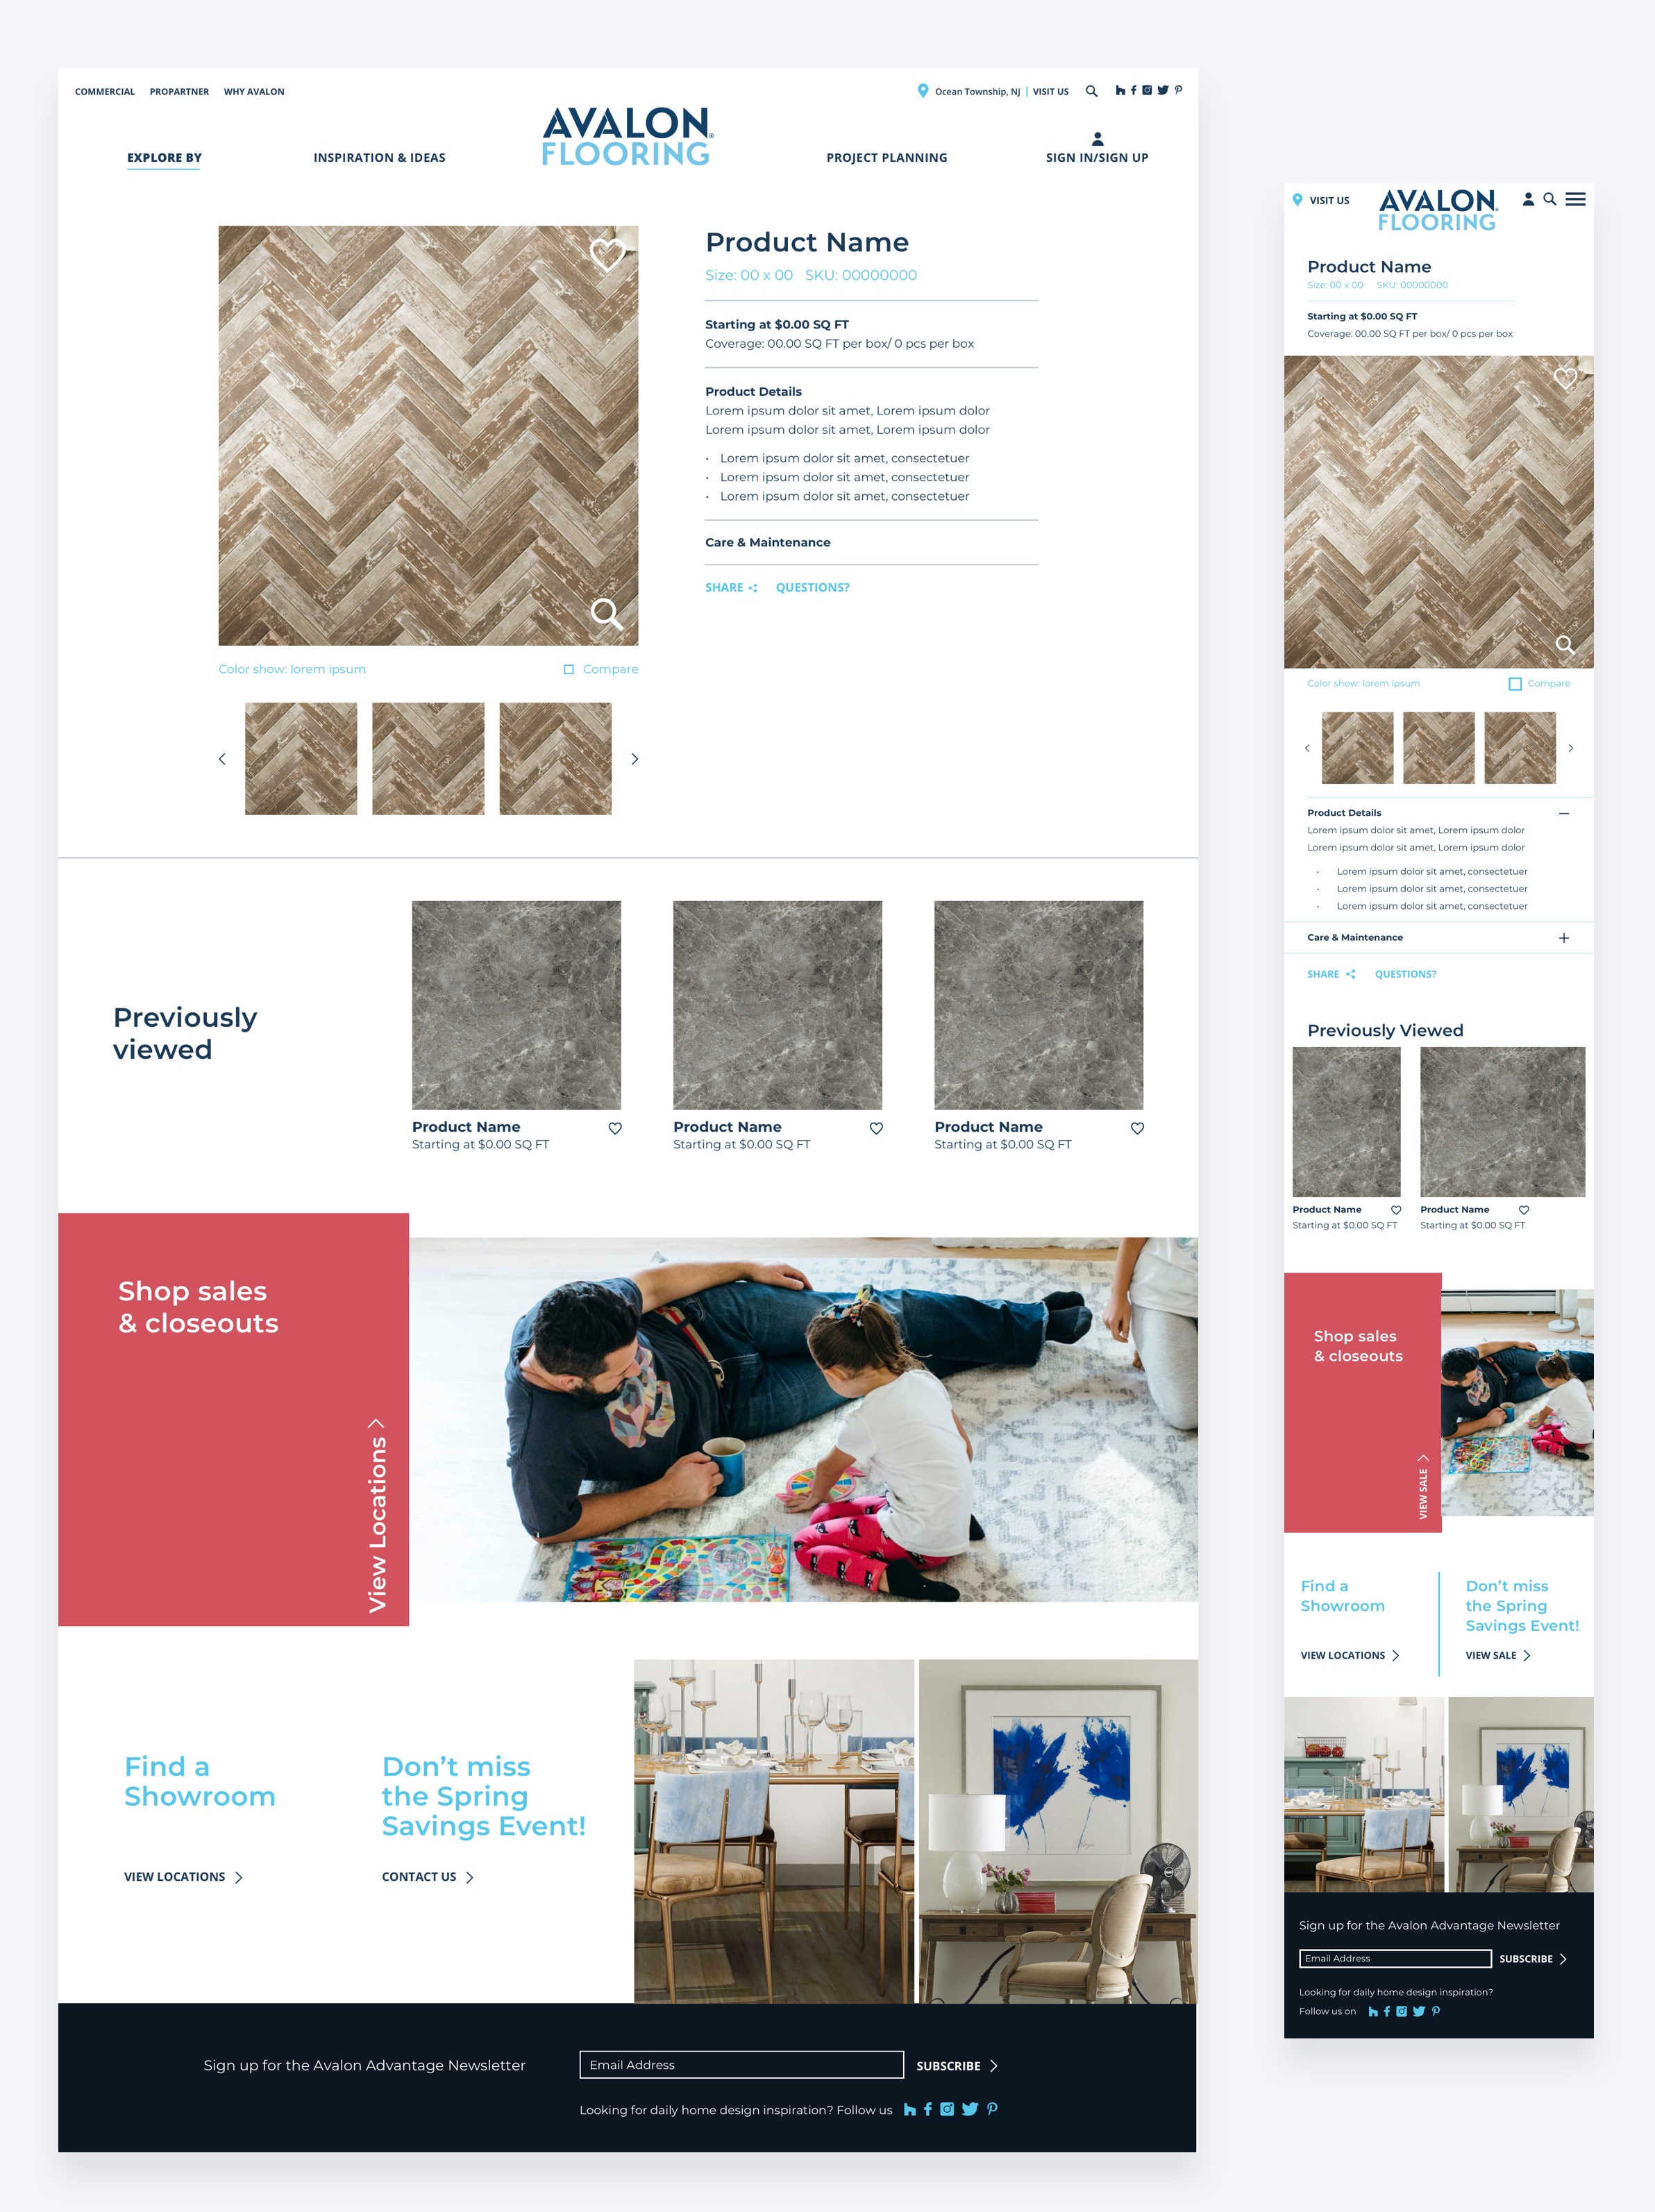 High-fidelity final design of the Avalon Flooring product page